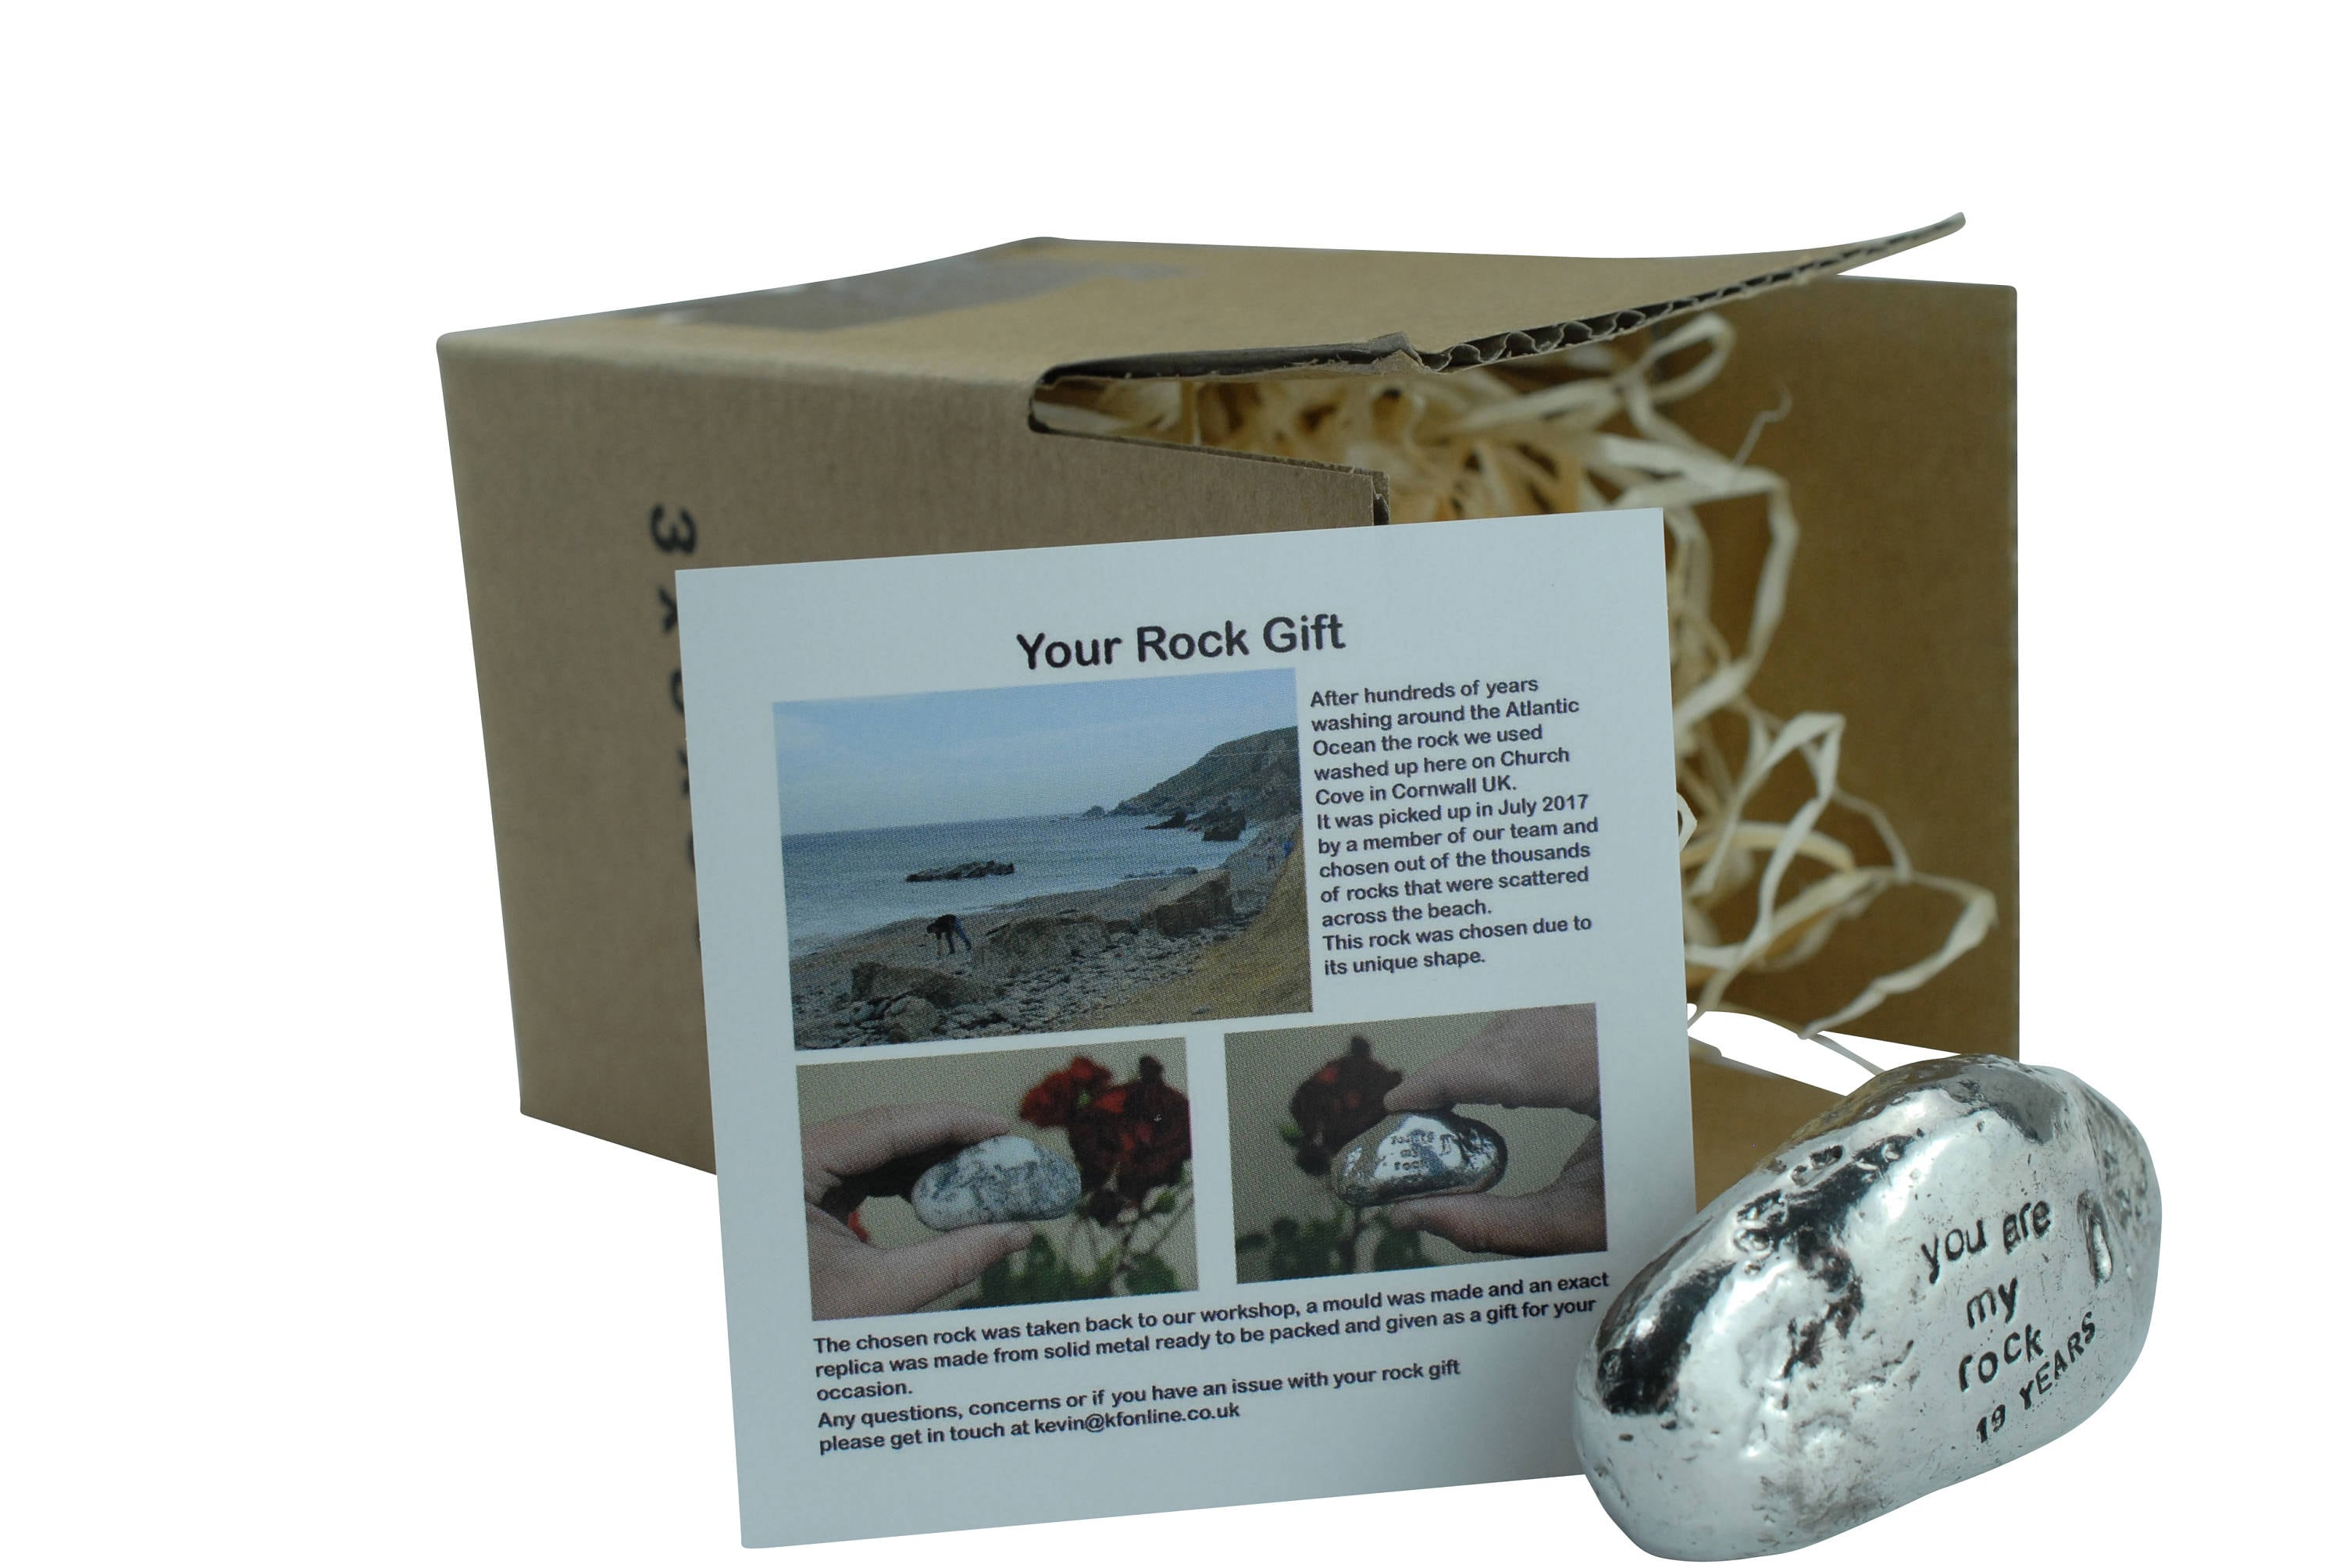 Gift For 19th Wedding Anniversary: 19th Anniversary You Are My Rock Gift Idea Solid Metal